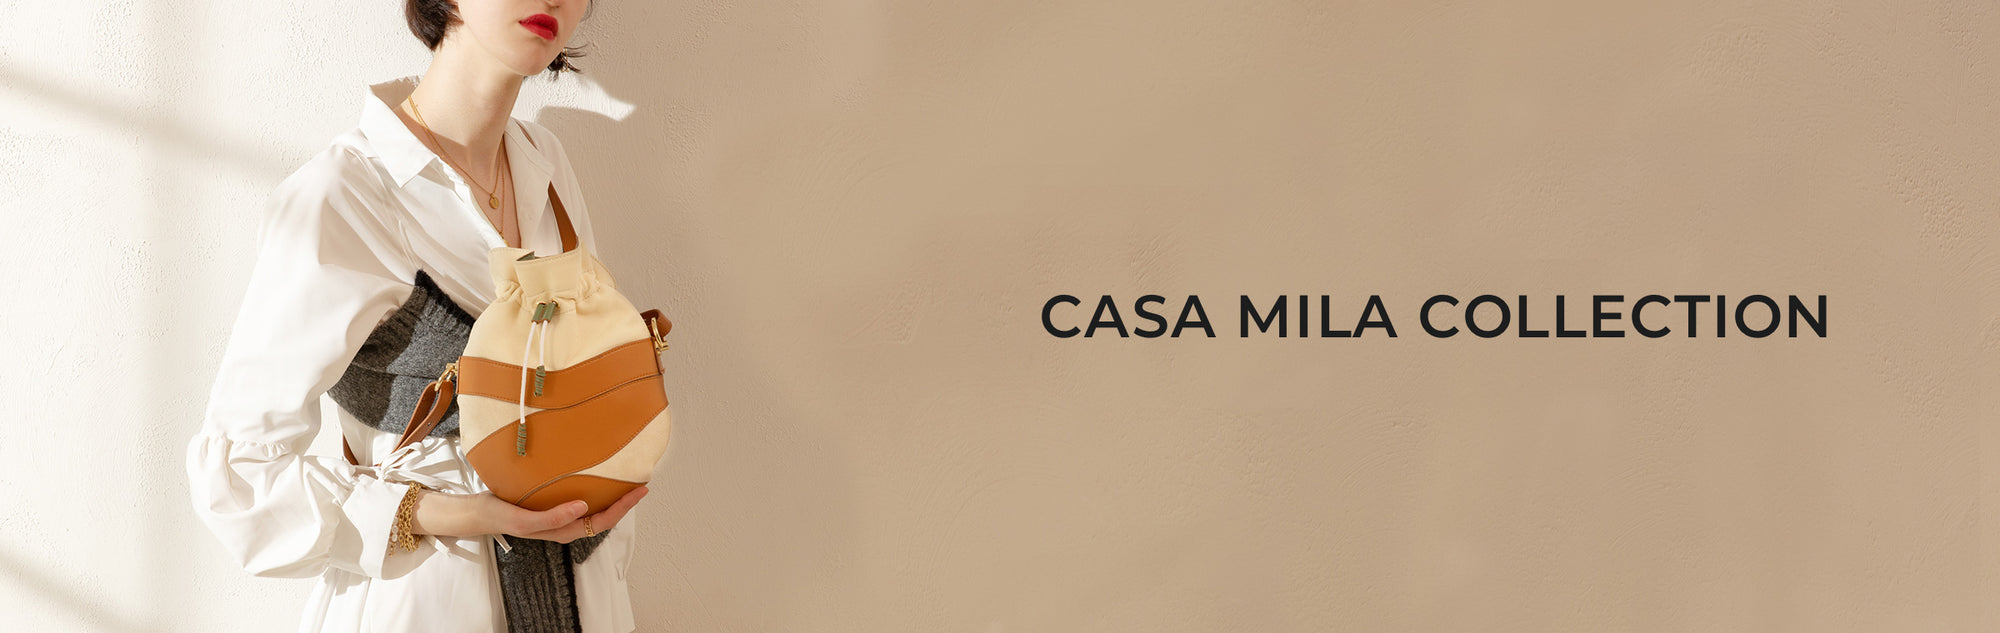 Casa Mila Collection